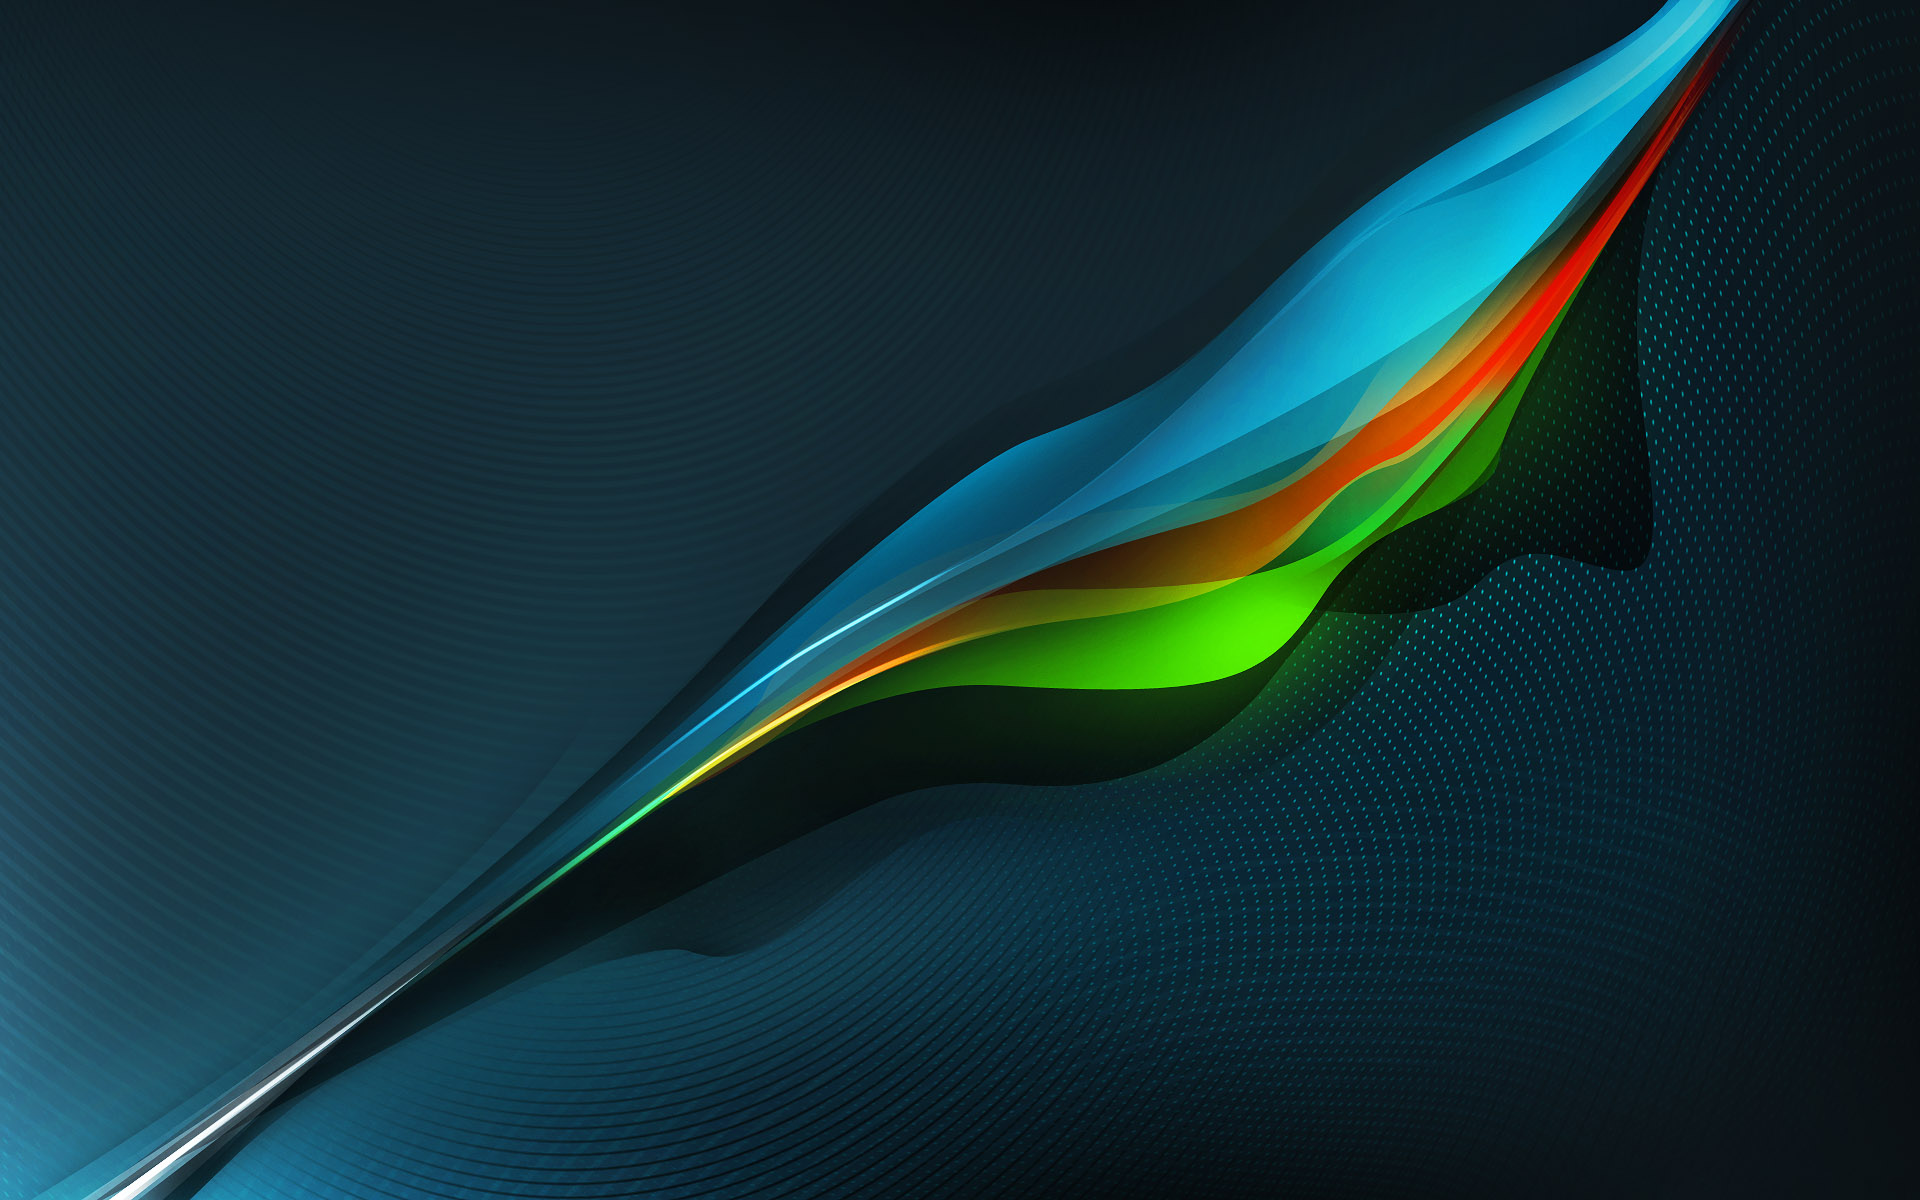 Abstract Wallpapers Widescreen Hd HD Walls 1920x1200